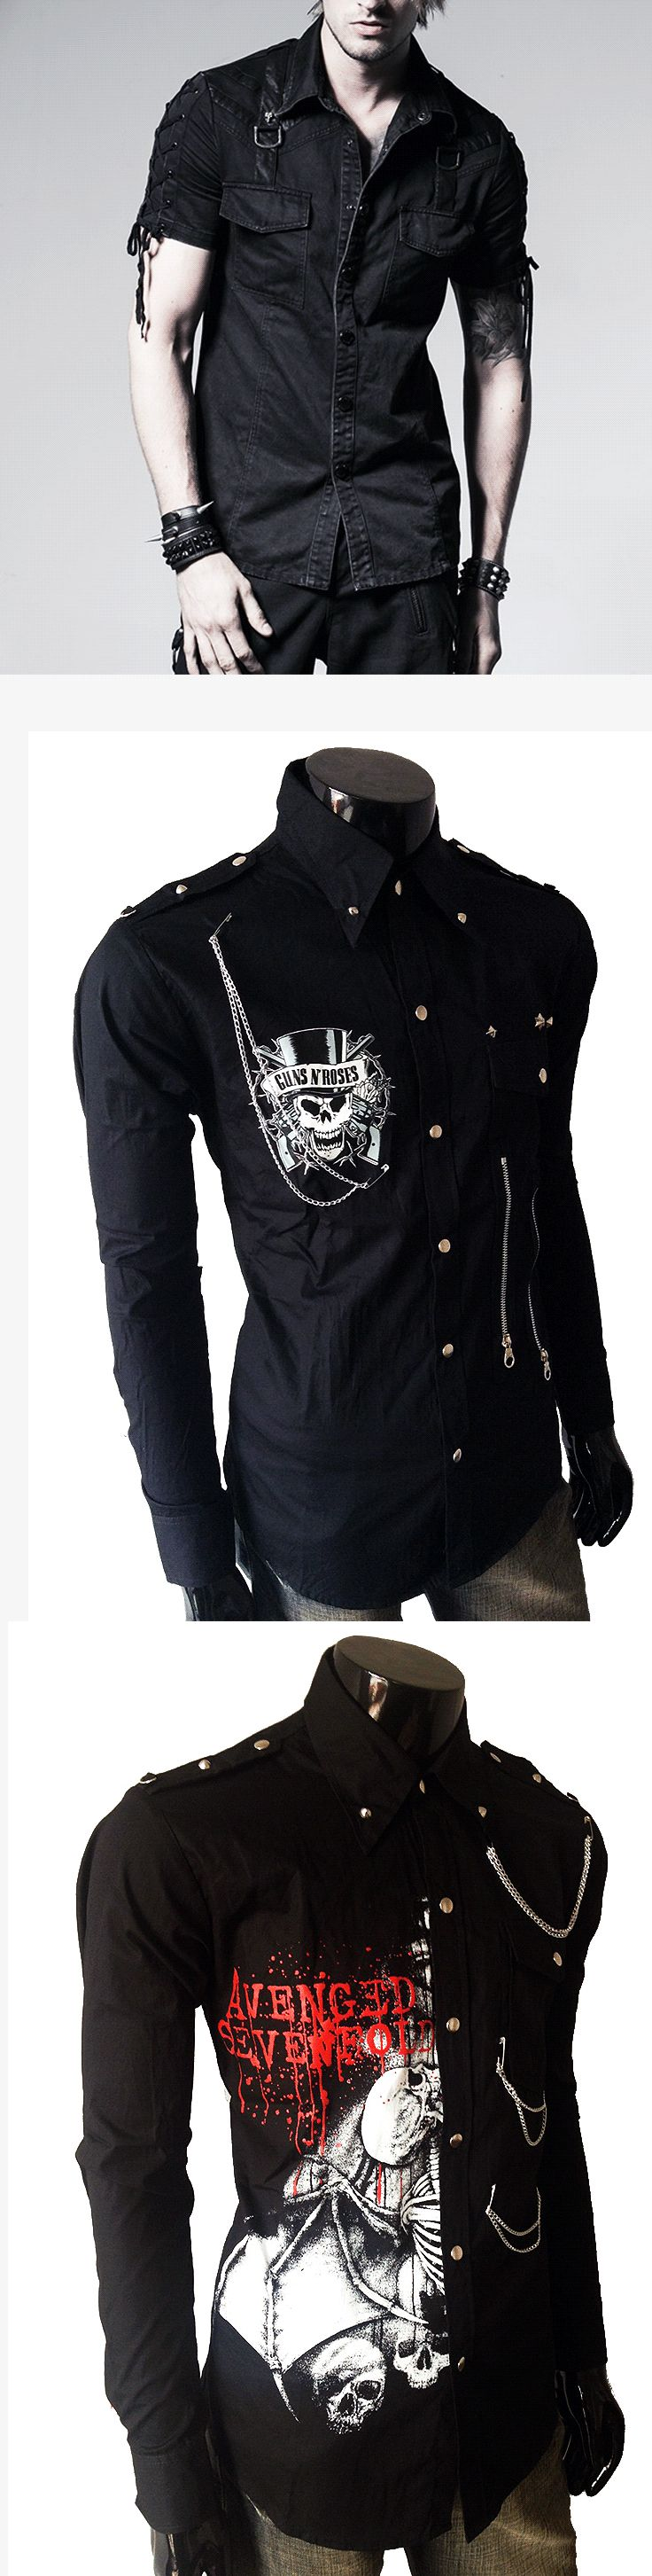 Shop punk skull shirts for men at RebelsMarket.